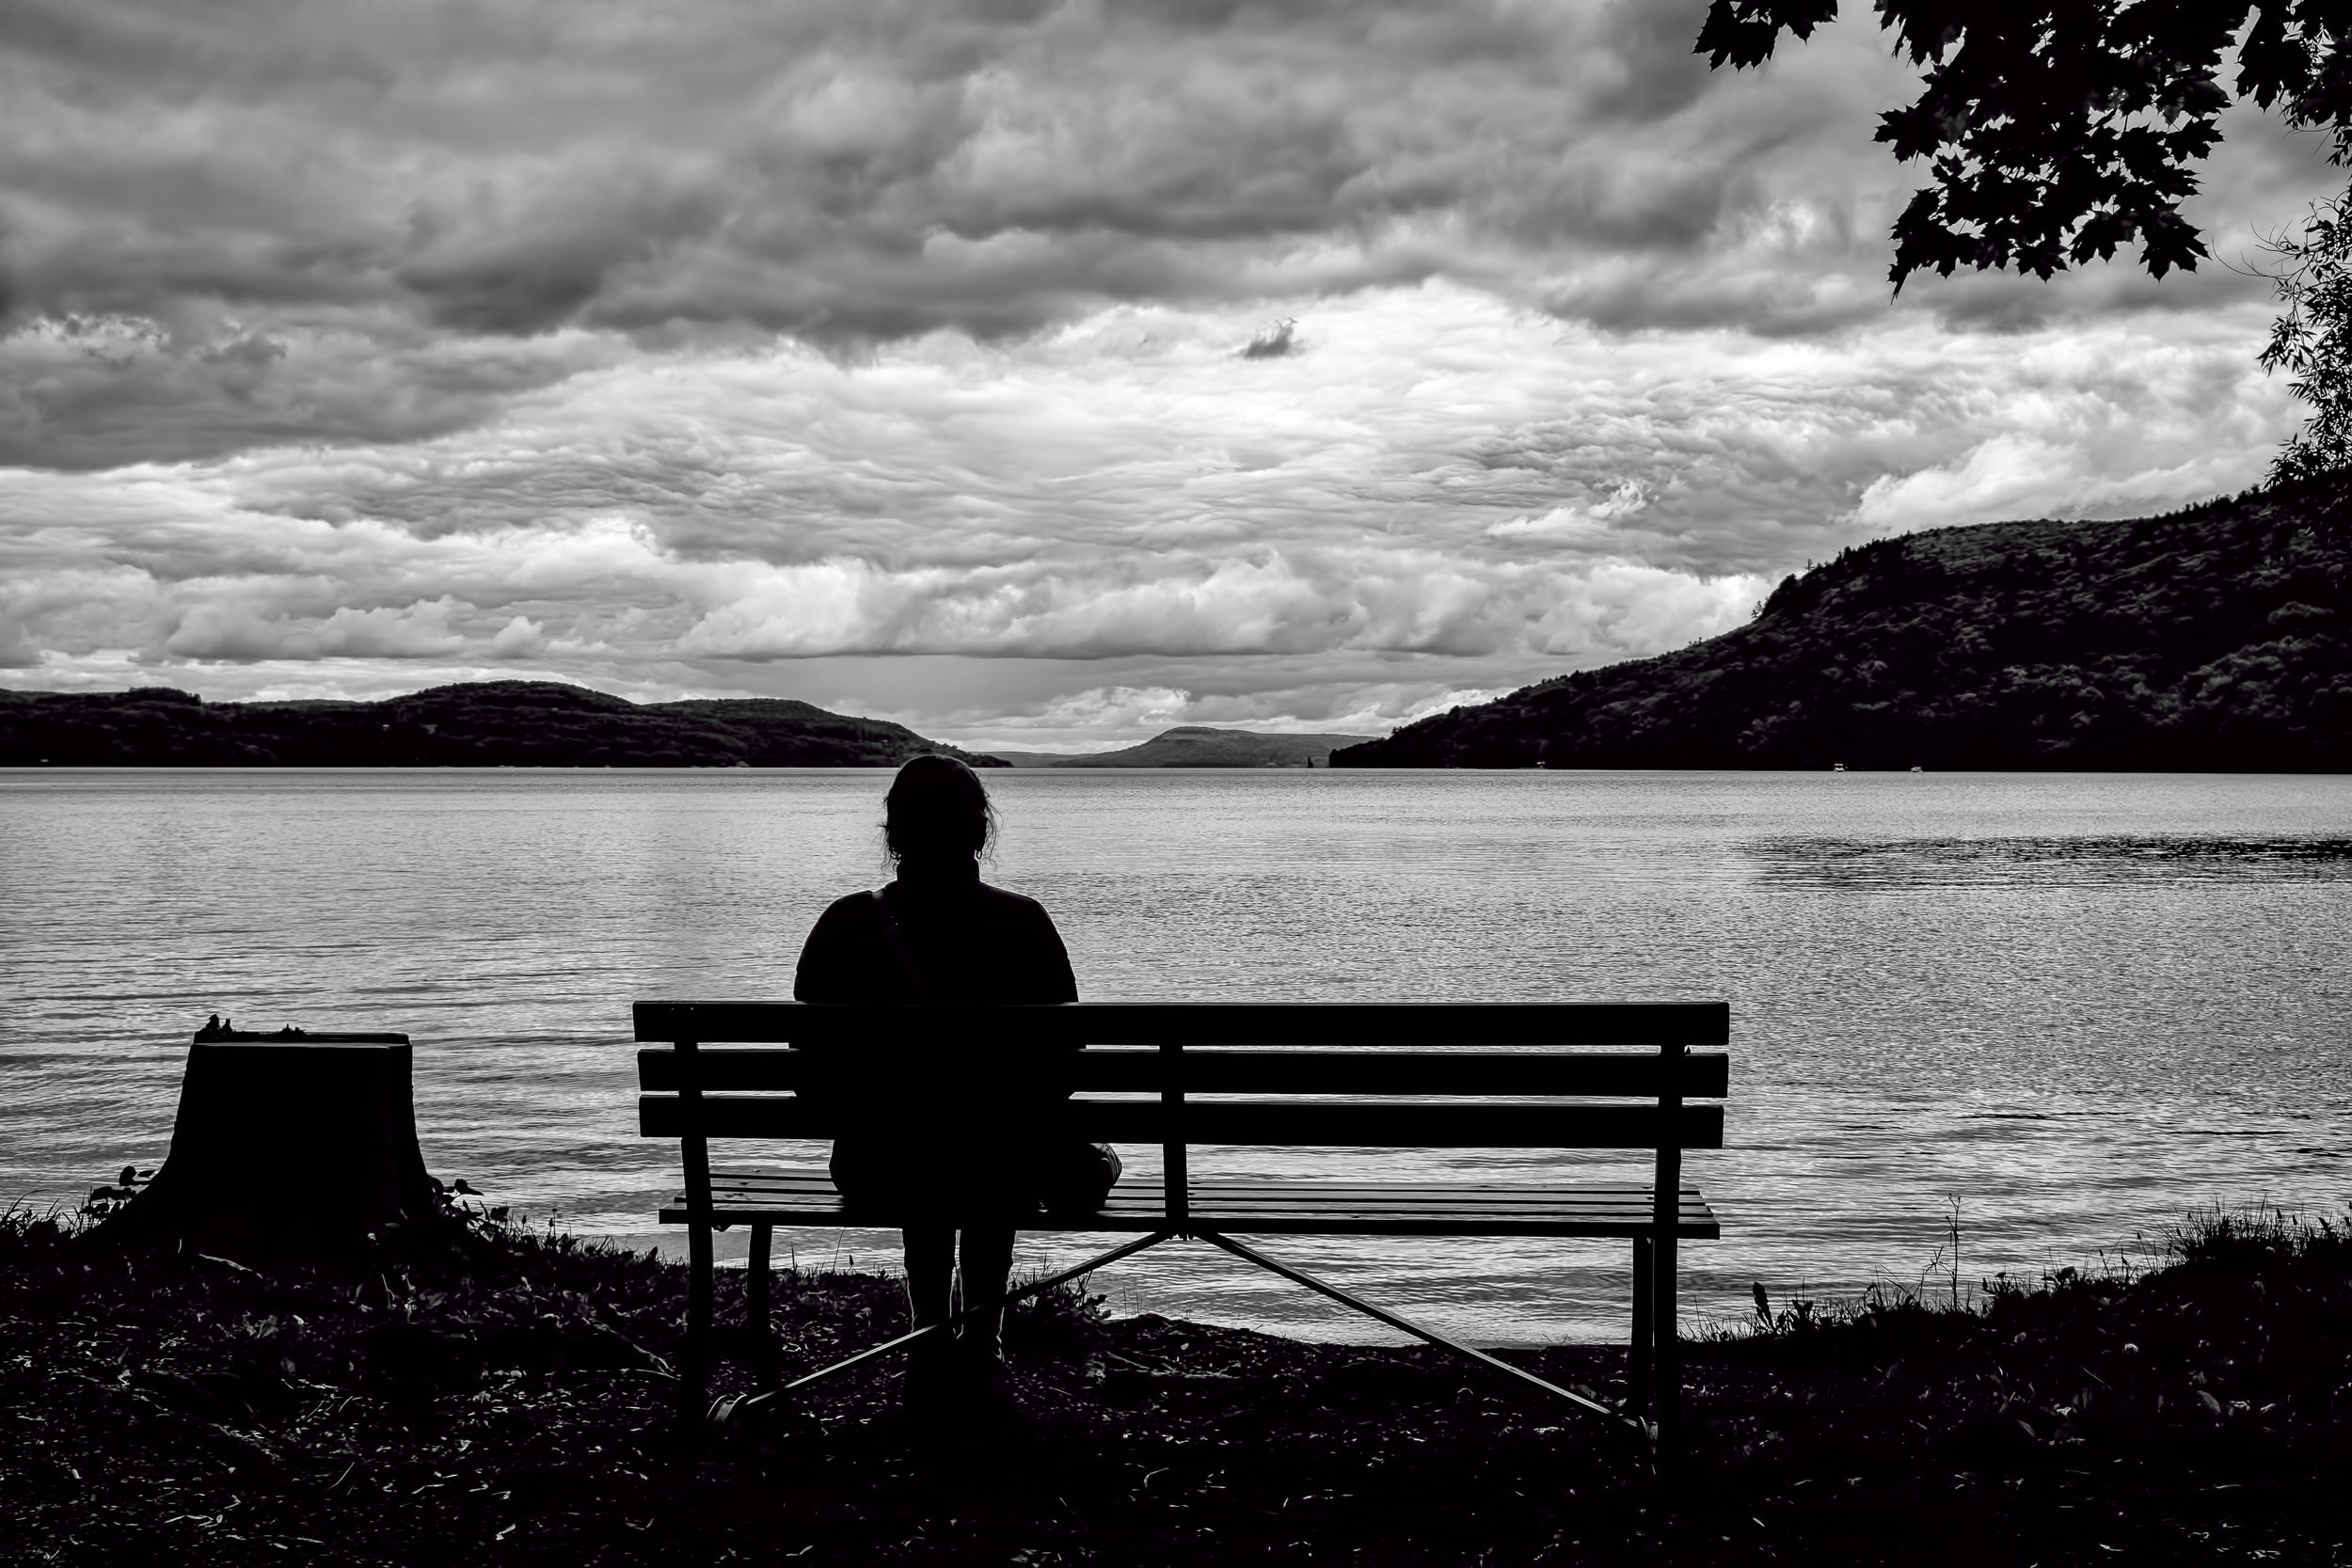 Come Sit for Awhile - Fujifilm X100T, 1/250 @ f/11, ISO200,23mm - Shot at Glimmerglass Lake in Cooperstown, NY - See my poem of the same title in the Poetry Section